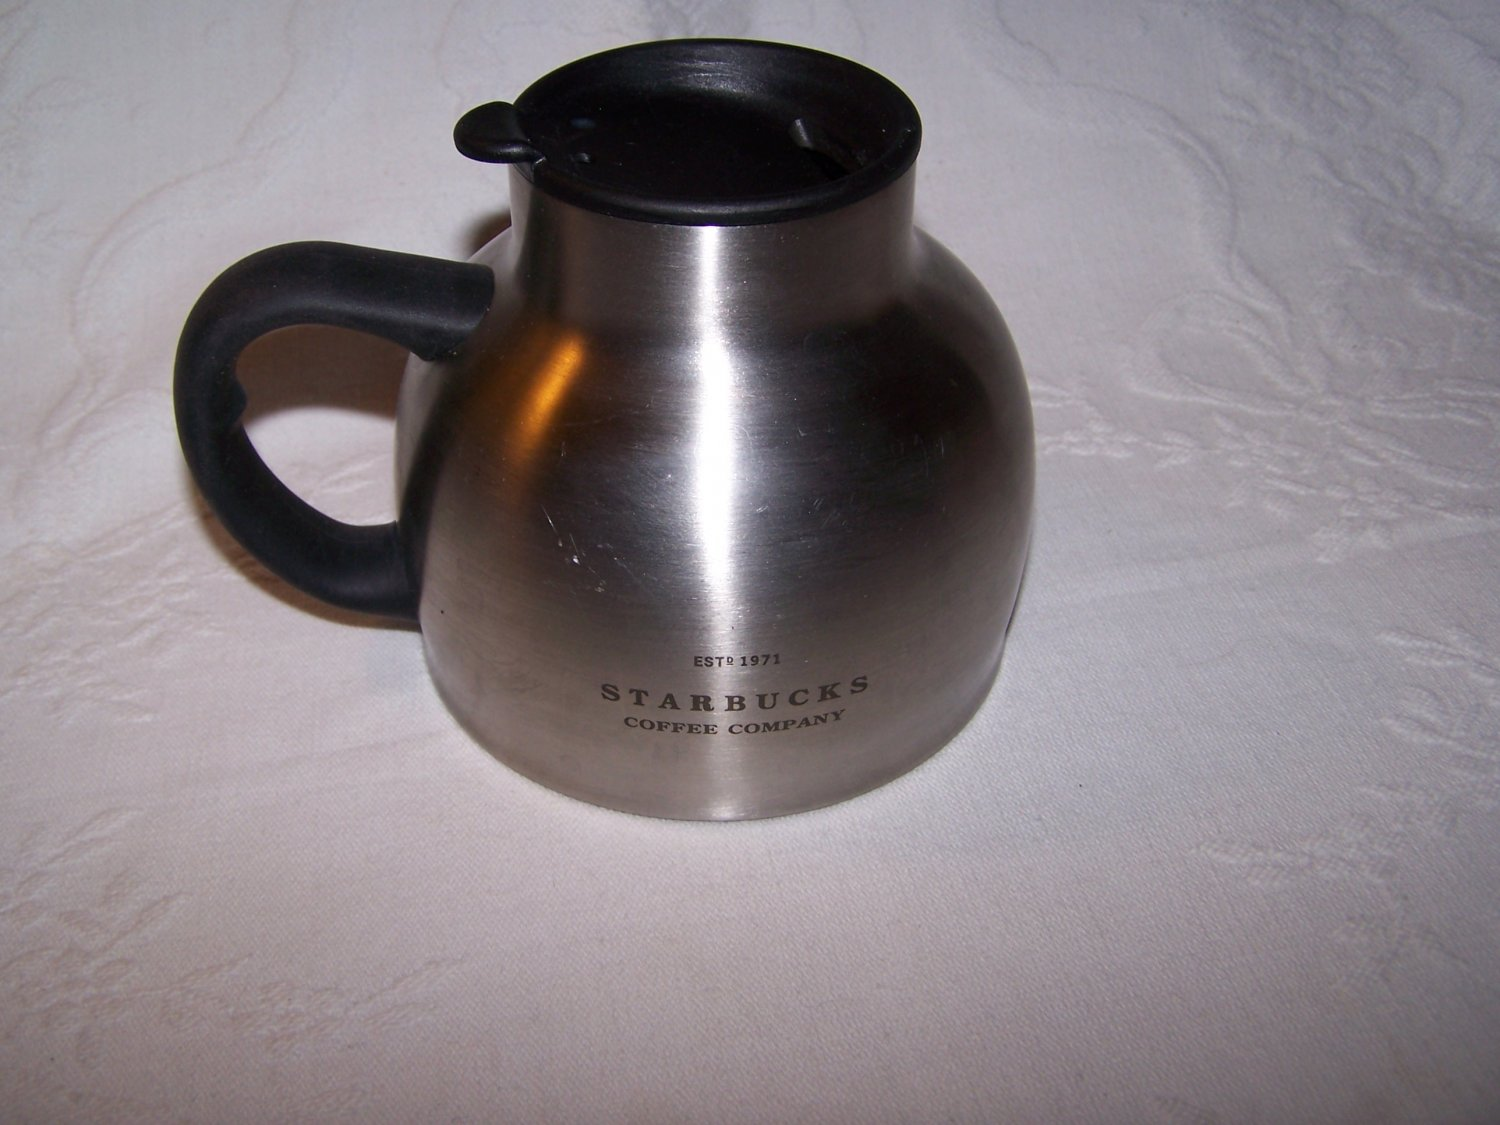 Starbucks Chubby Mug Stainless Steel Coffee Mug